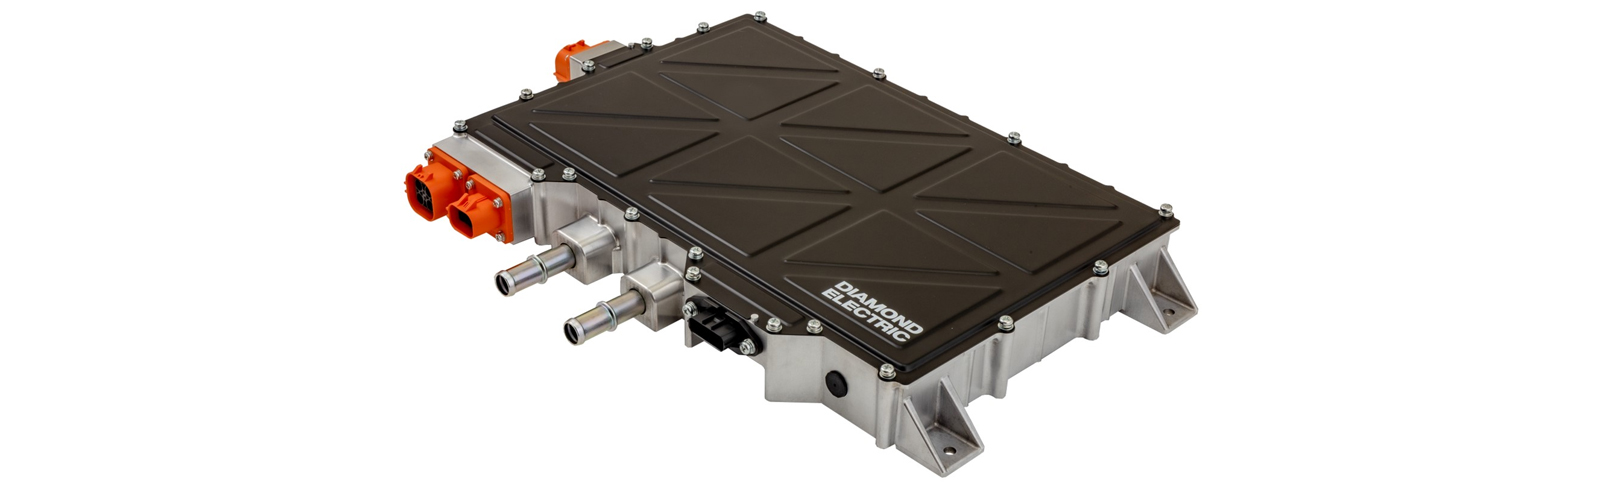 Diamond Electric has developed a 7.4 kW V2X onboard charger with one of the highest energy densities in the world